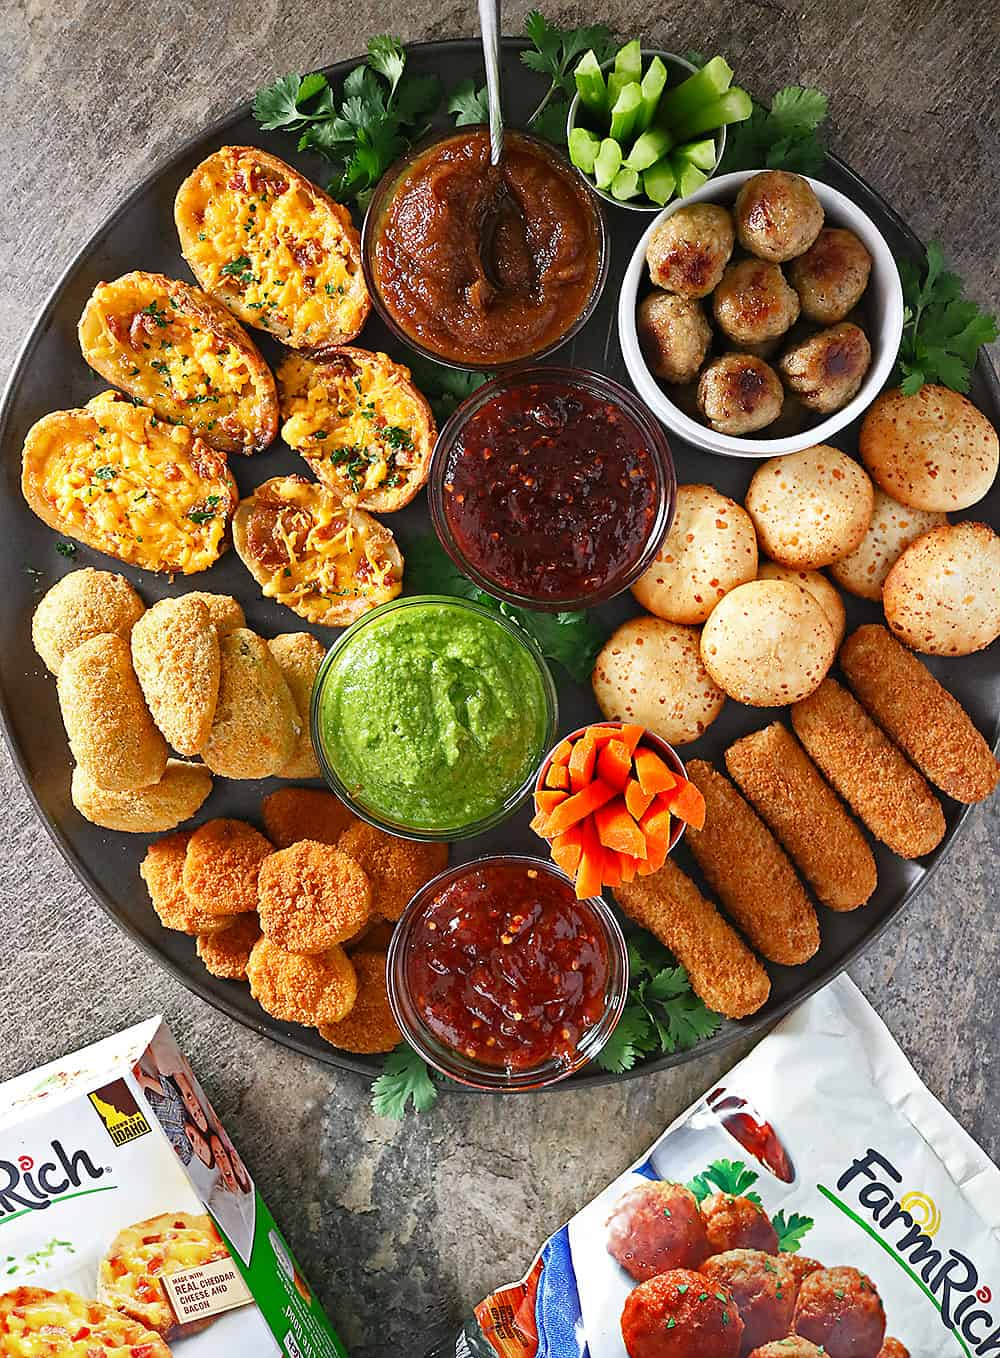 This delicious Party platter with Spicy Chili Maple Sauce, Spicy Peach Sauce, Spicy Green Sauce, & Spicy Date Sauce is one  you are going to want to serve at your get togethers.